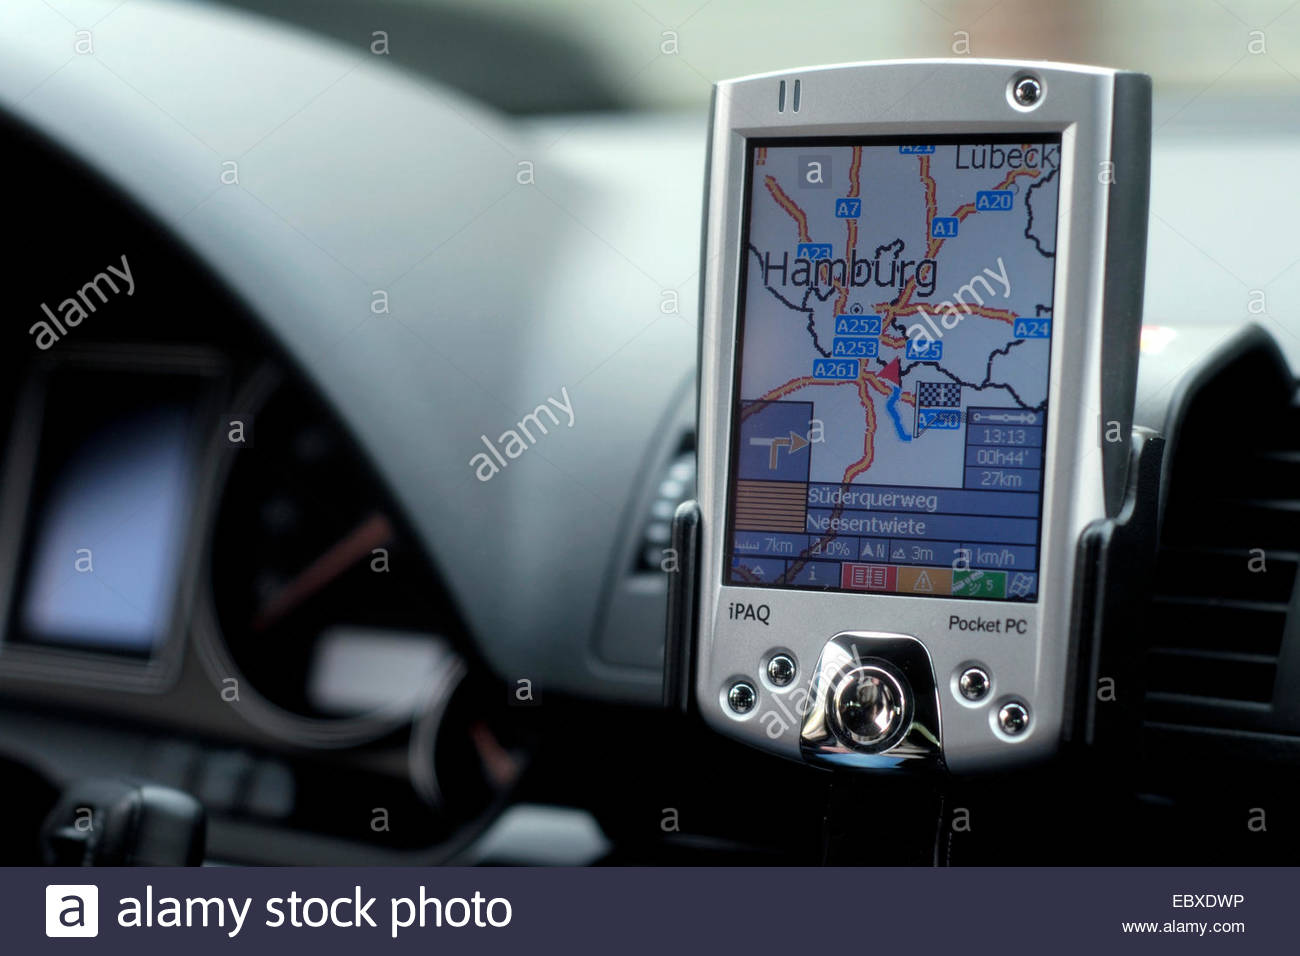 navigation system ina car - Stock Image